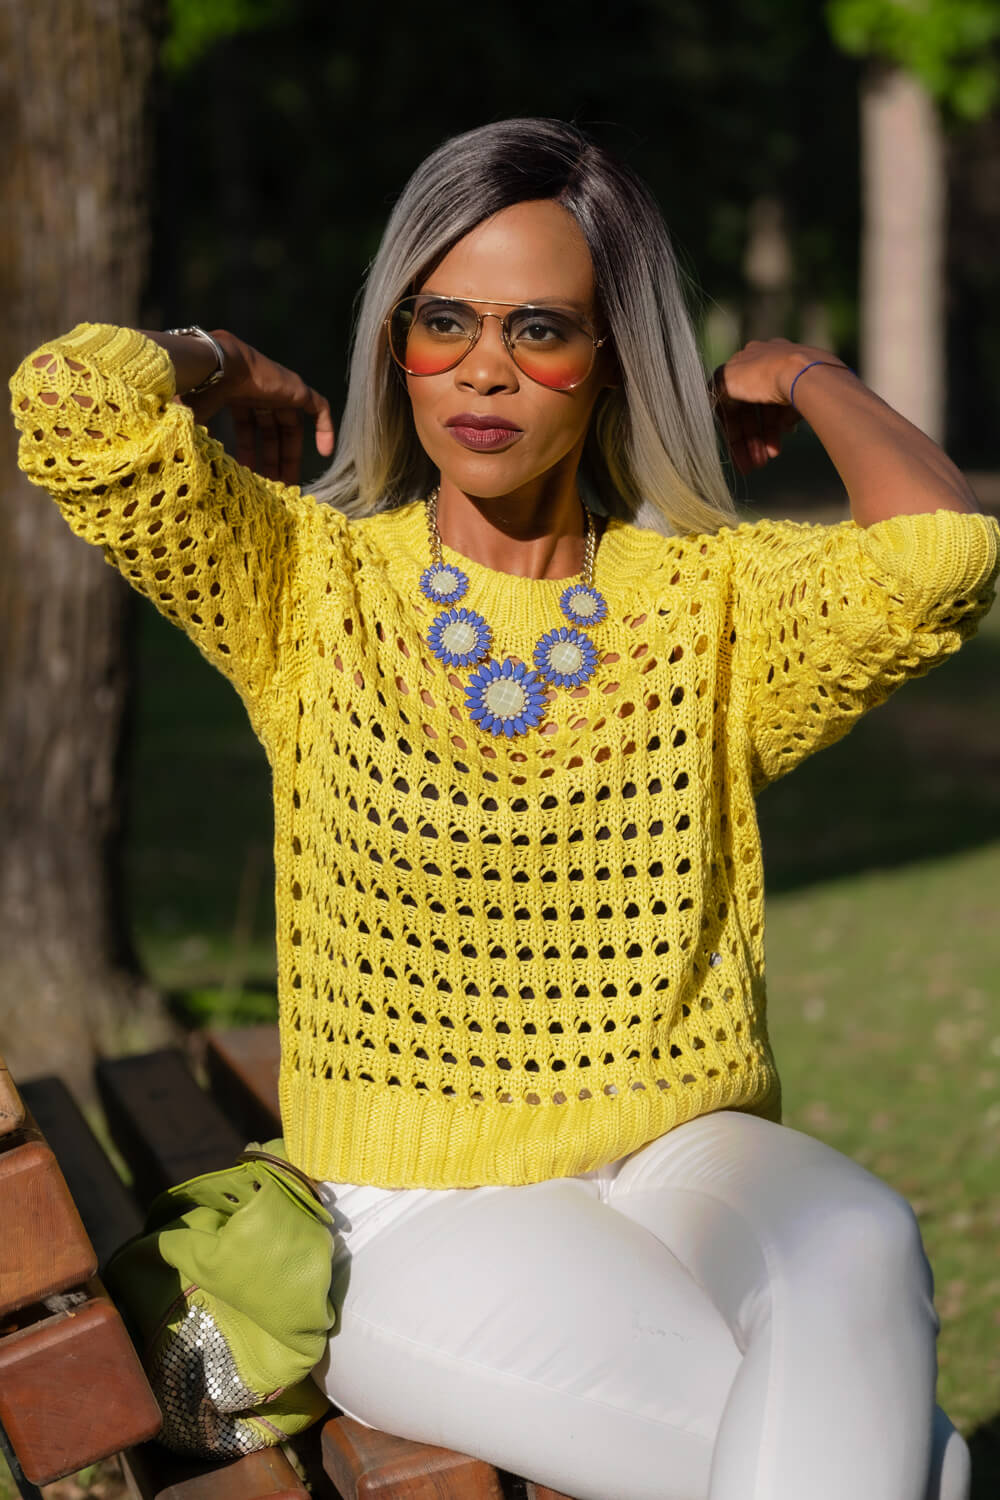 Forever 21 Sweater, Yellow Knit Sweater, Summer fashion, Summer Trends, Summer Outfit Ideas, Winnipeg Fashion Blogger